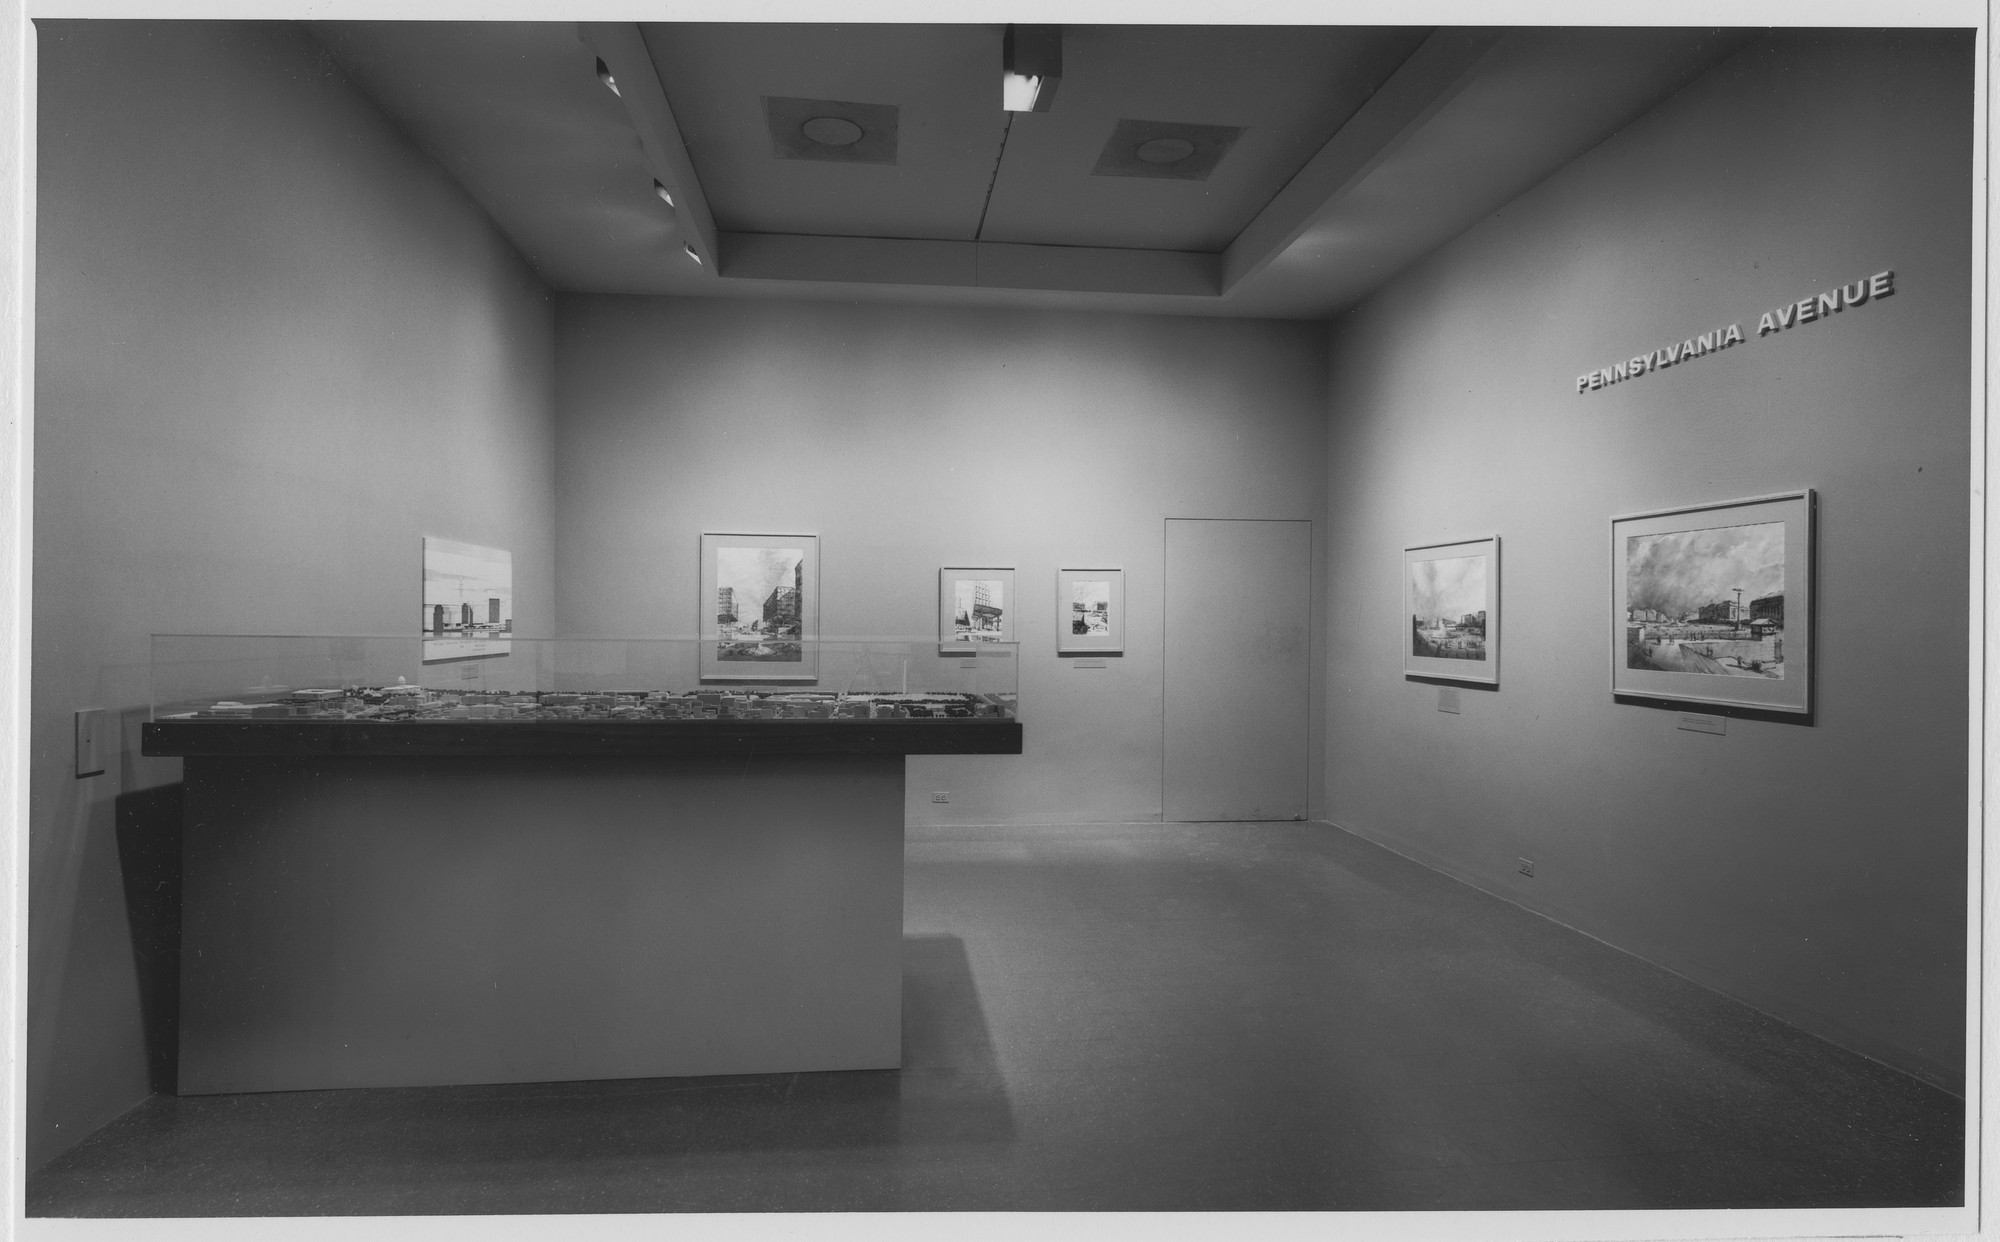 "Installation view of the exhibition, ""Pennsylvania Avenue, Washington, D.C."" August 1, 1964–September 13, 1964. Photographic Archive. The Museum of Modern Art Archives, New York. IN745.1. Photograph by George Cserna."